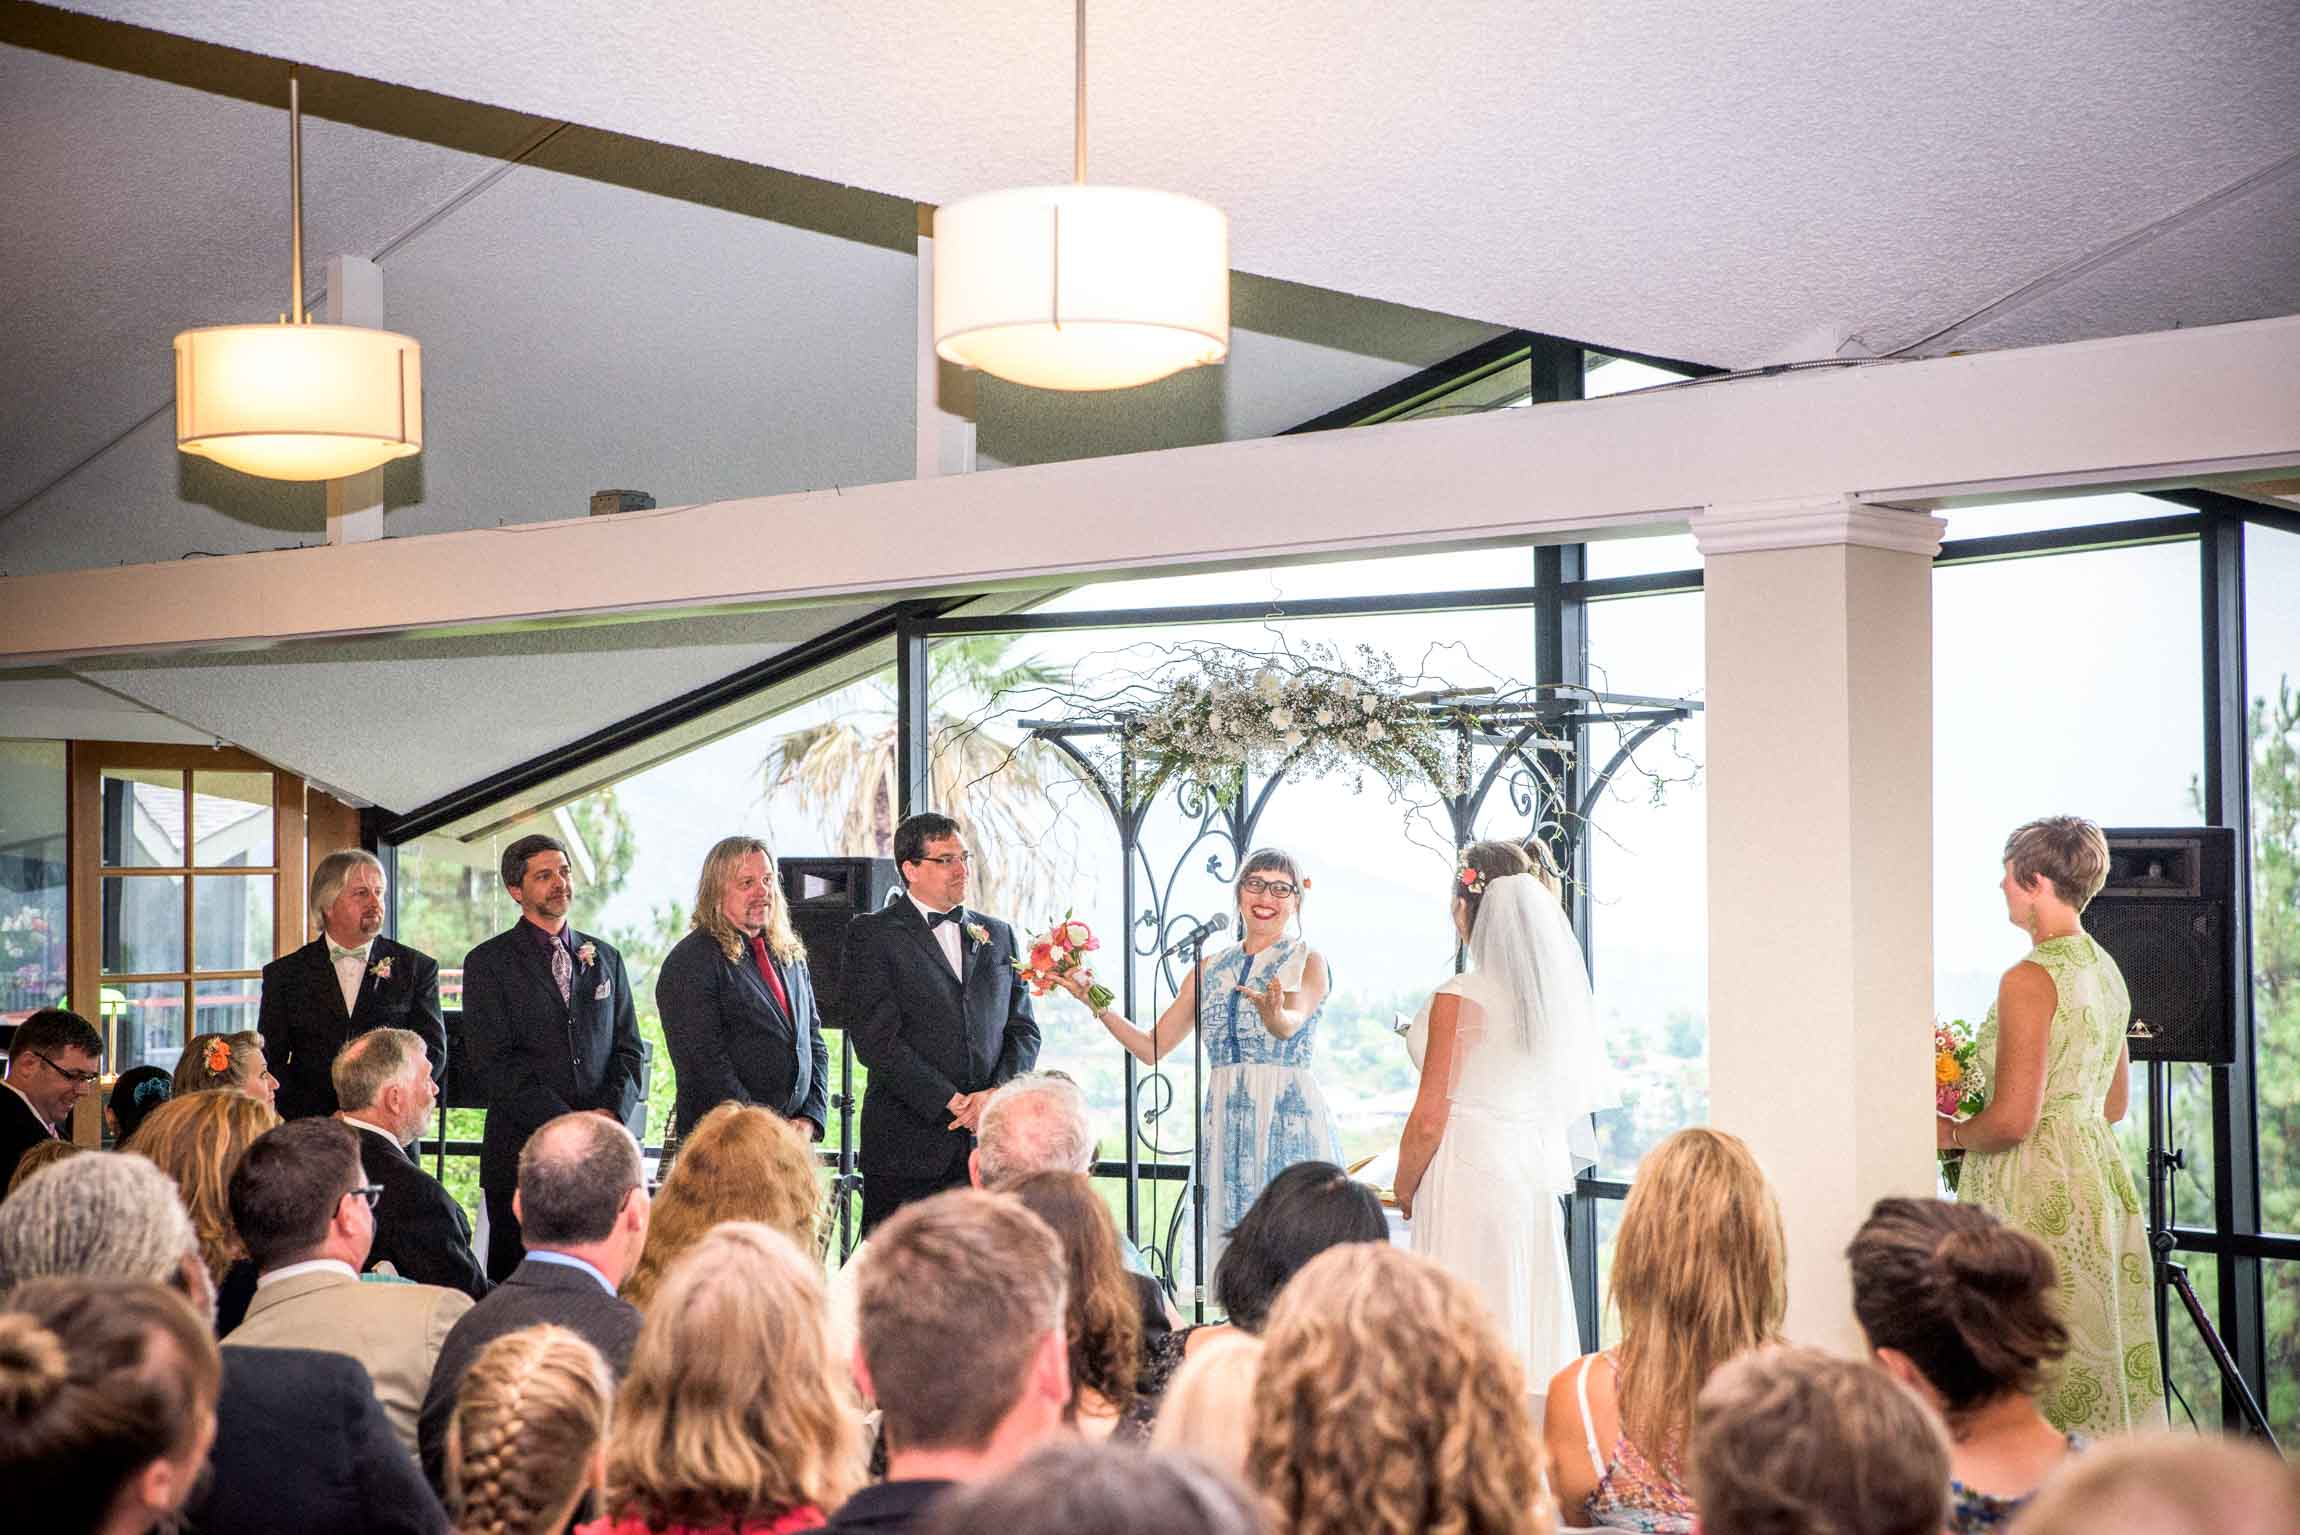 014_lacanada_wedding_losangeles_photography.jpg